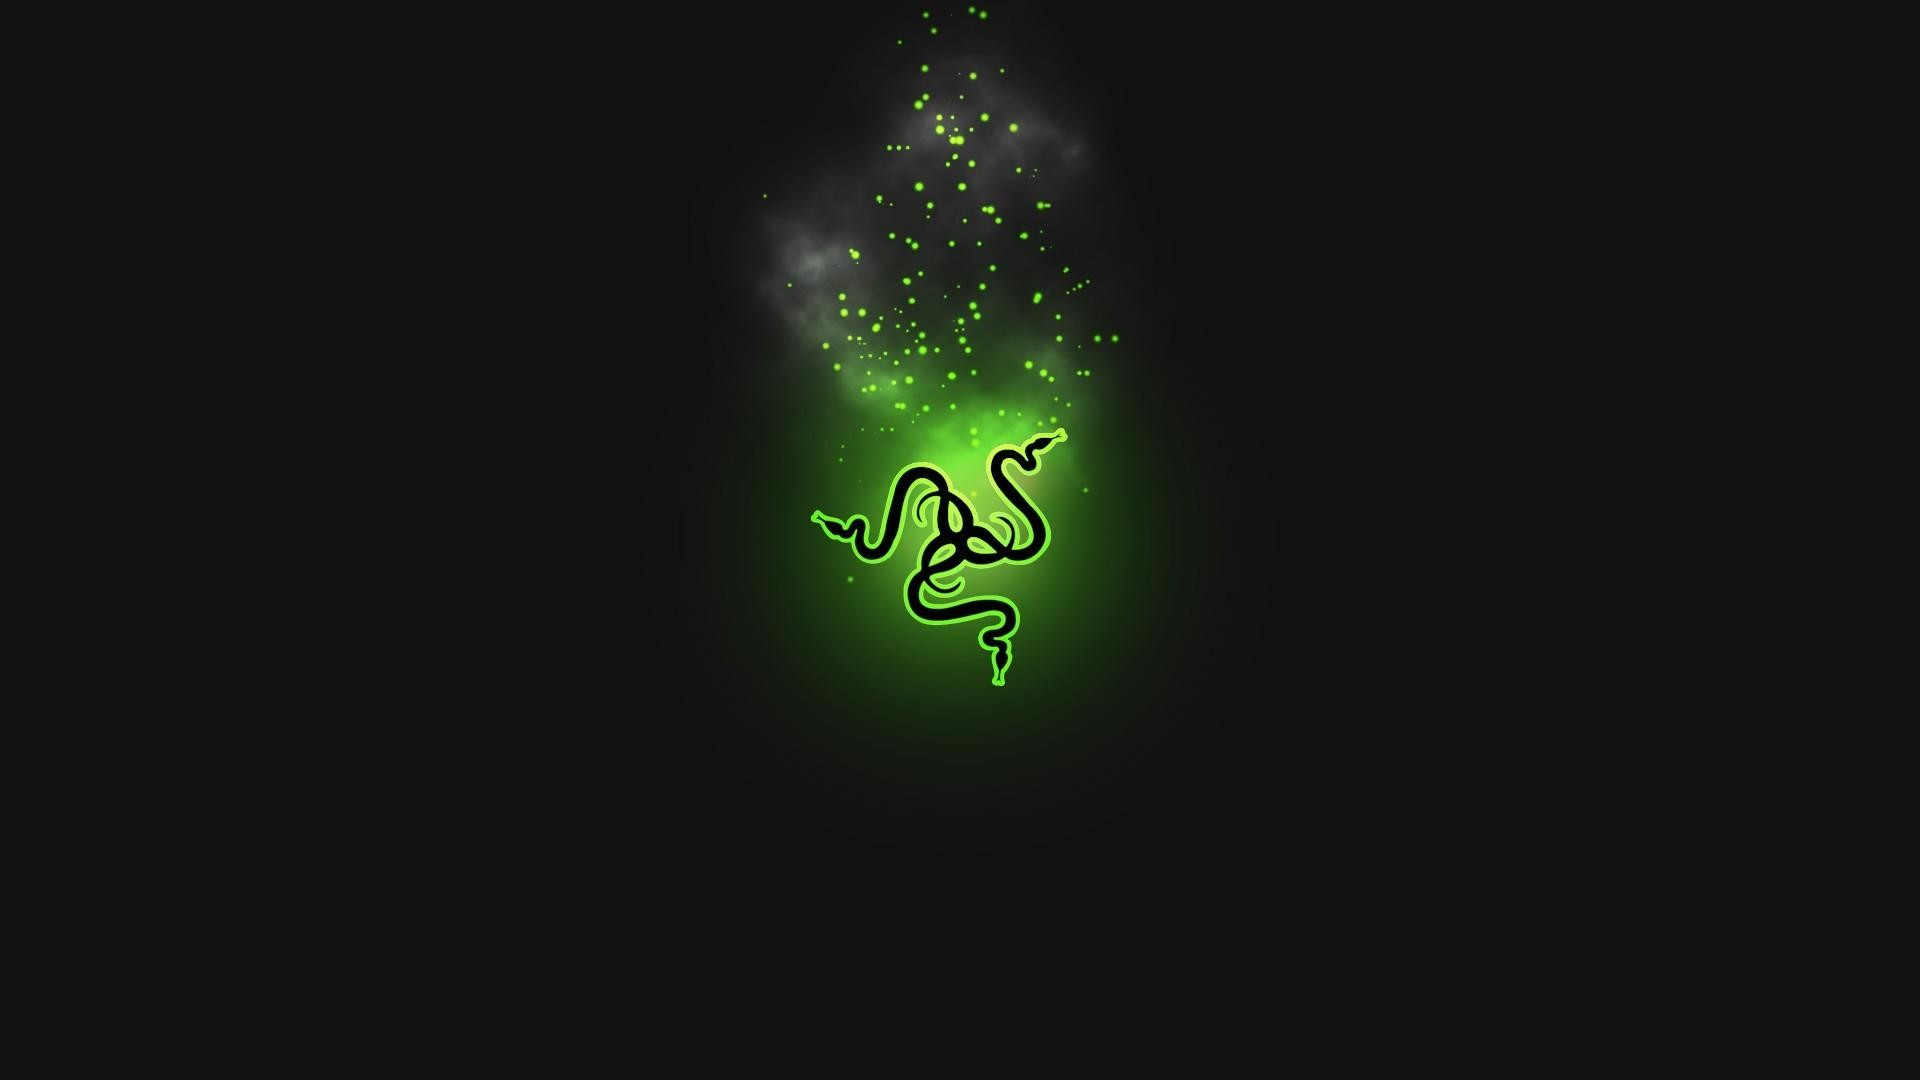 78 Razer Wallpaper 4k